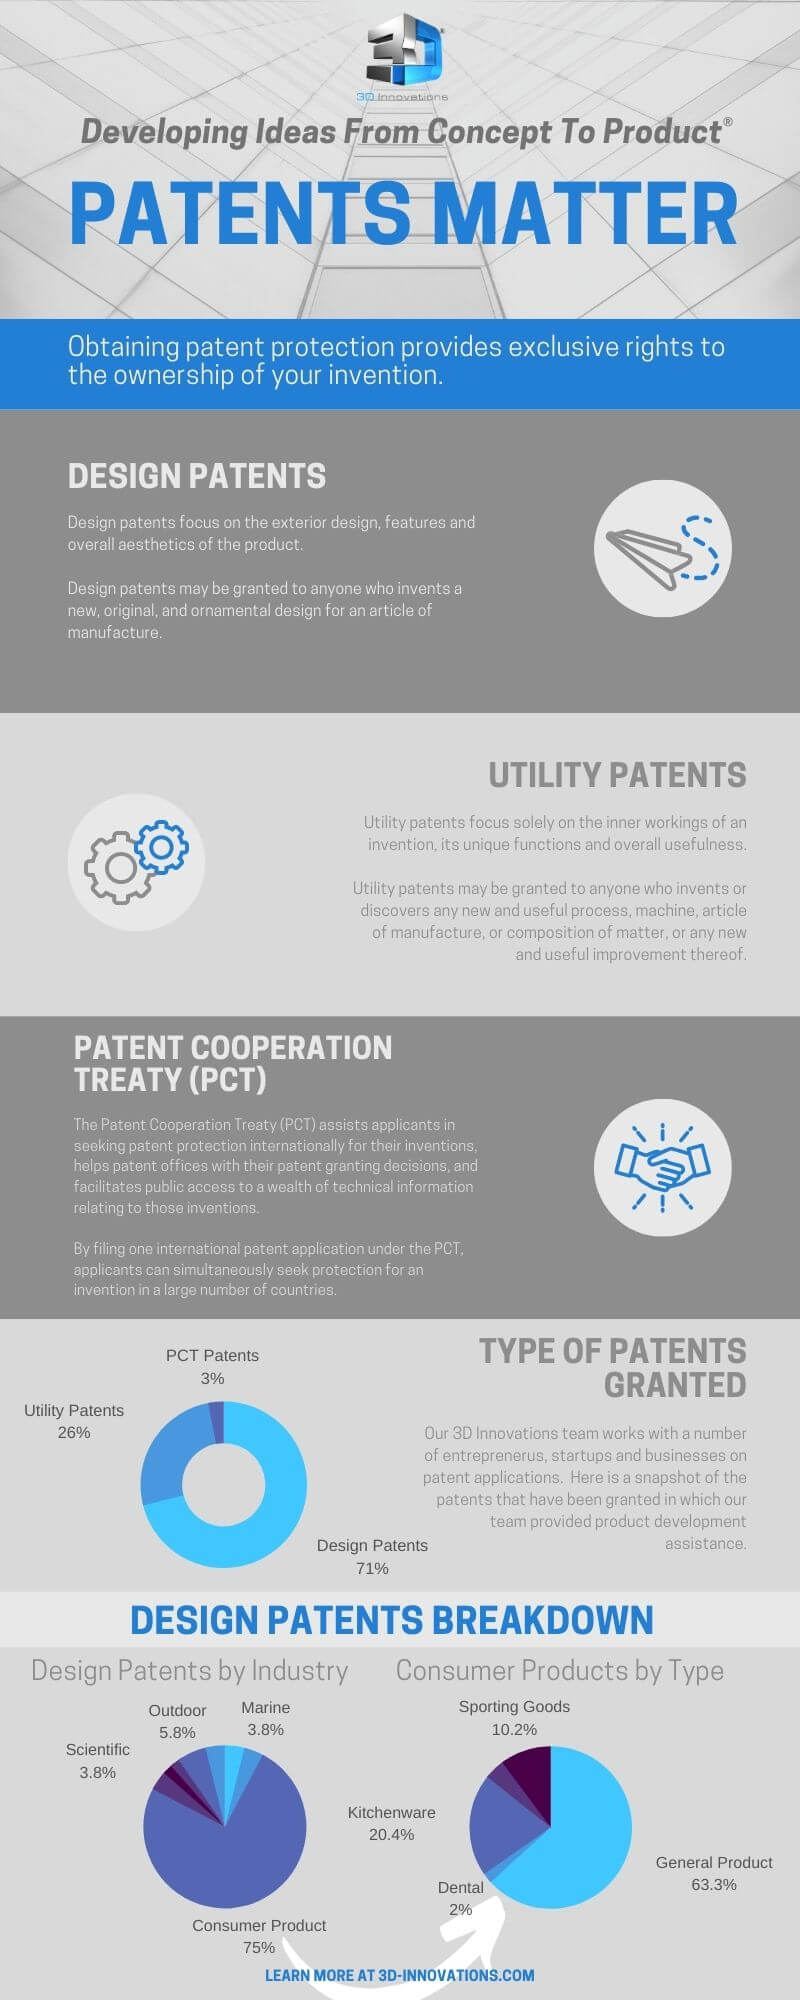 Patent protection is important for your invention and startup.